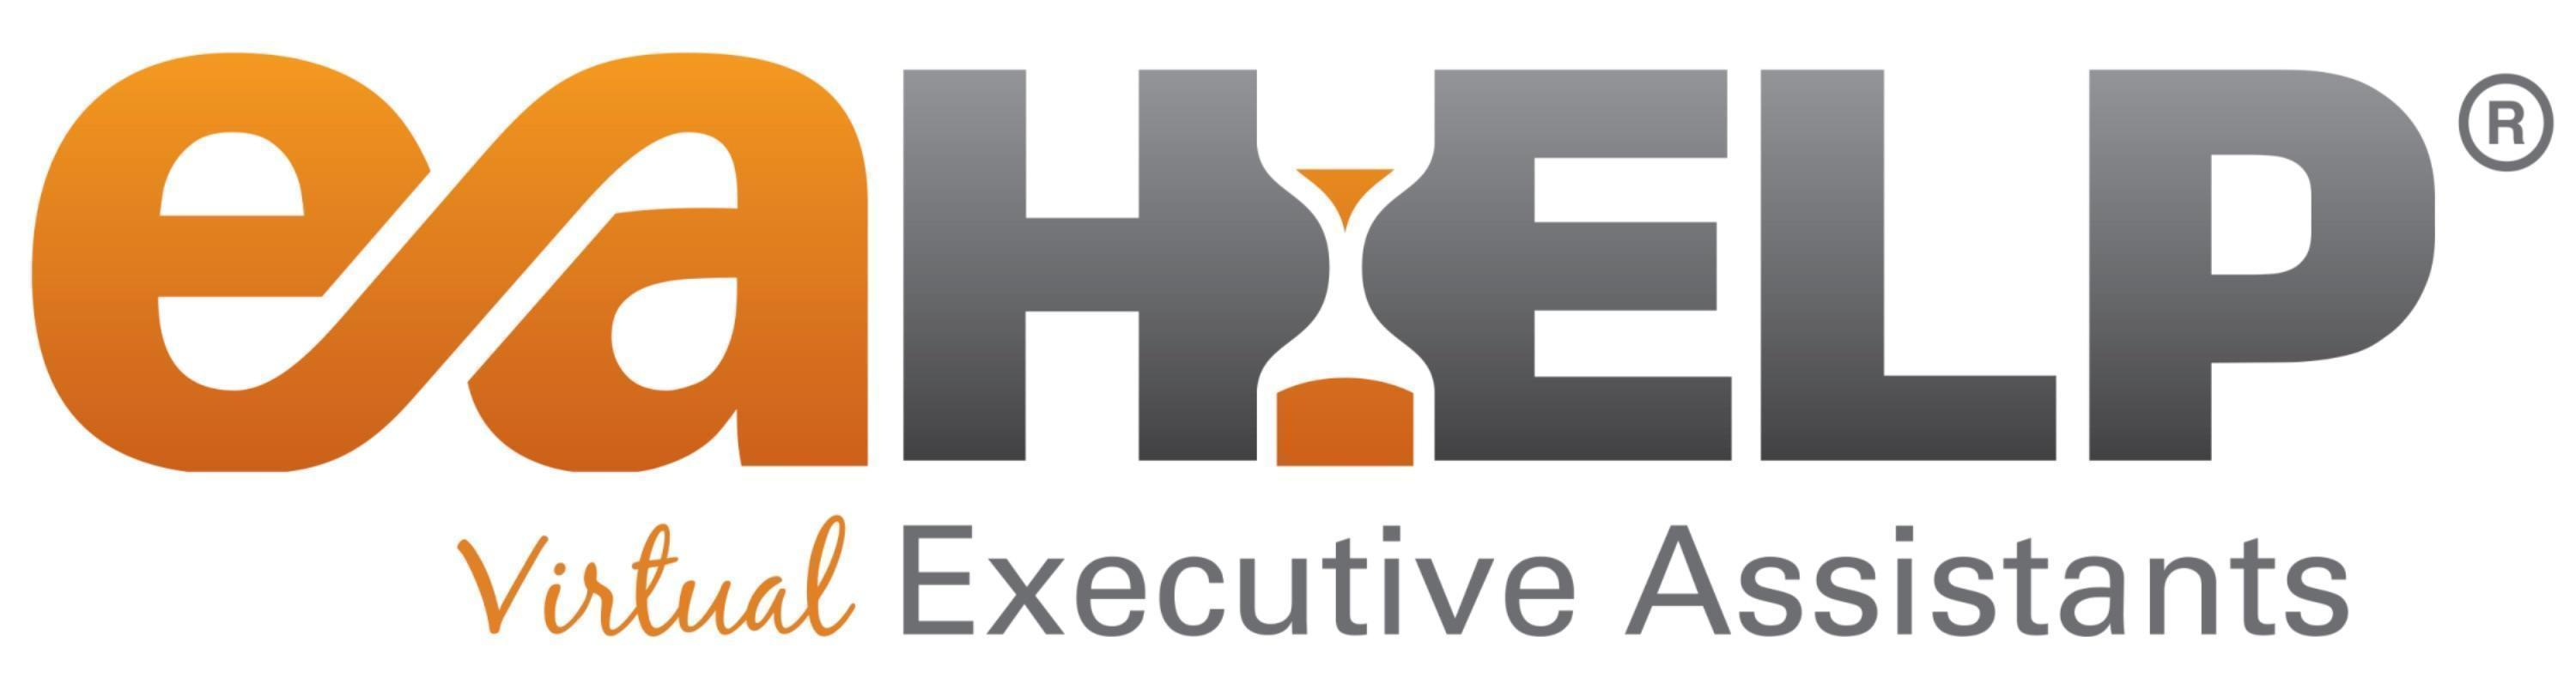 job openings to help your telecommute dreams take flight virtual executive assistant anywhere via eahelp llc a virtual assistant placement service is looking for a telework executive assistant who will be